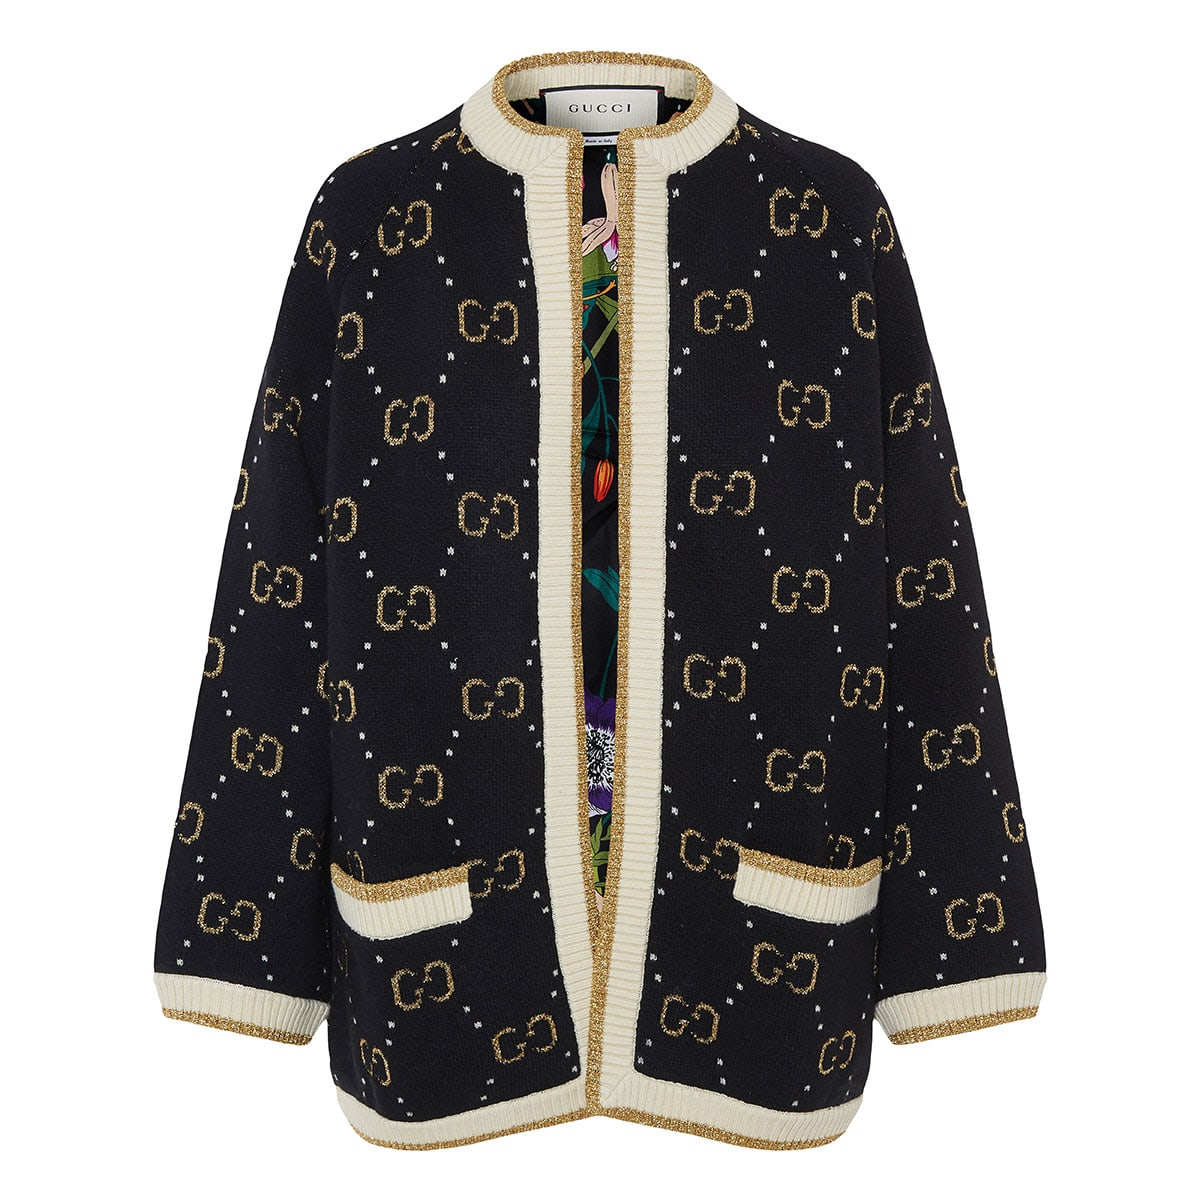 GG jacquard knitted cardigan